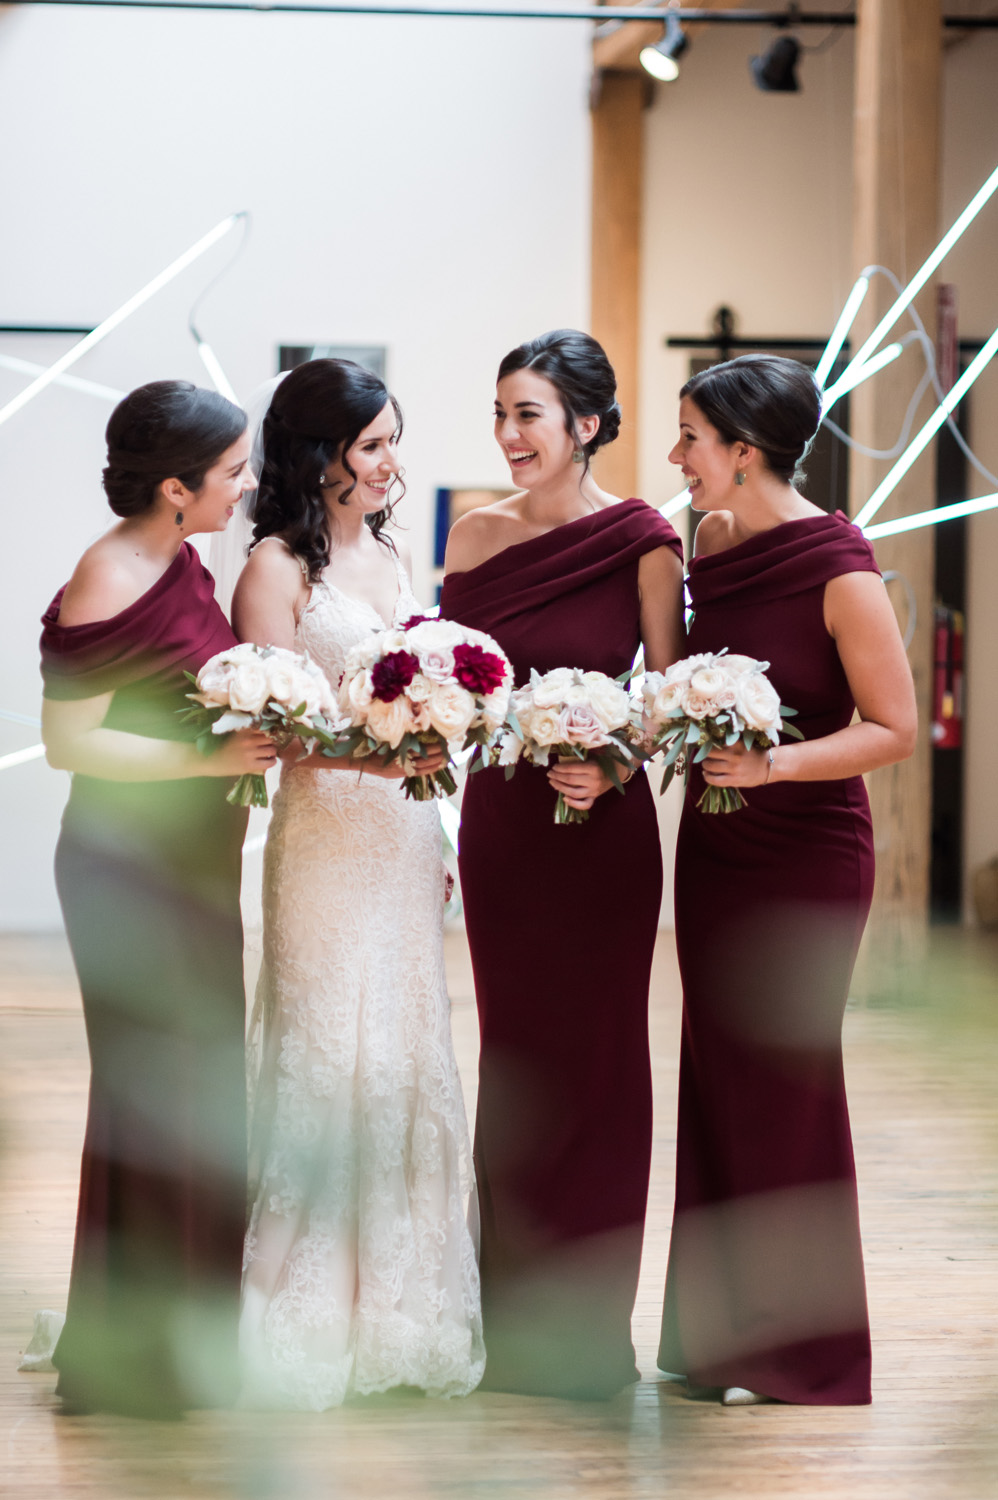 Group portrait of bride and bridesmaids.